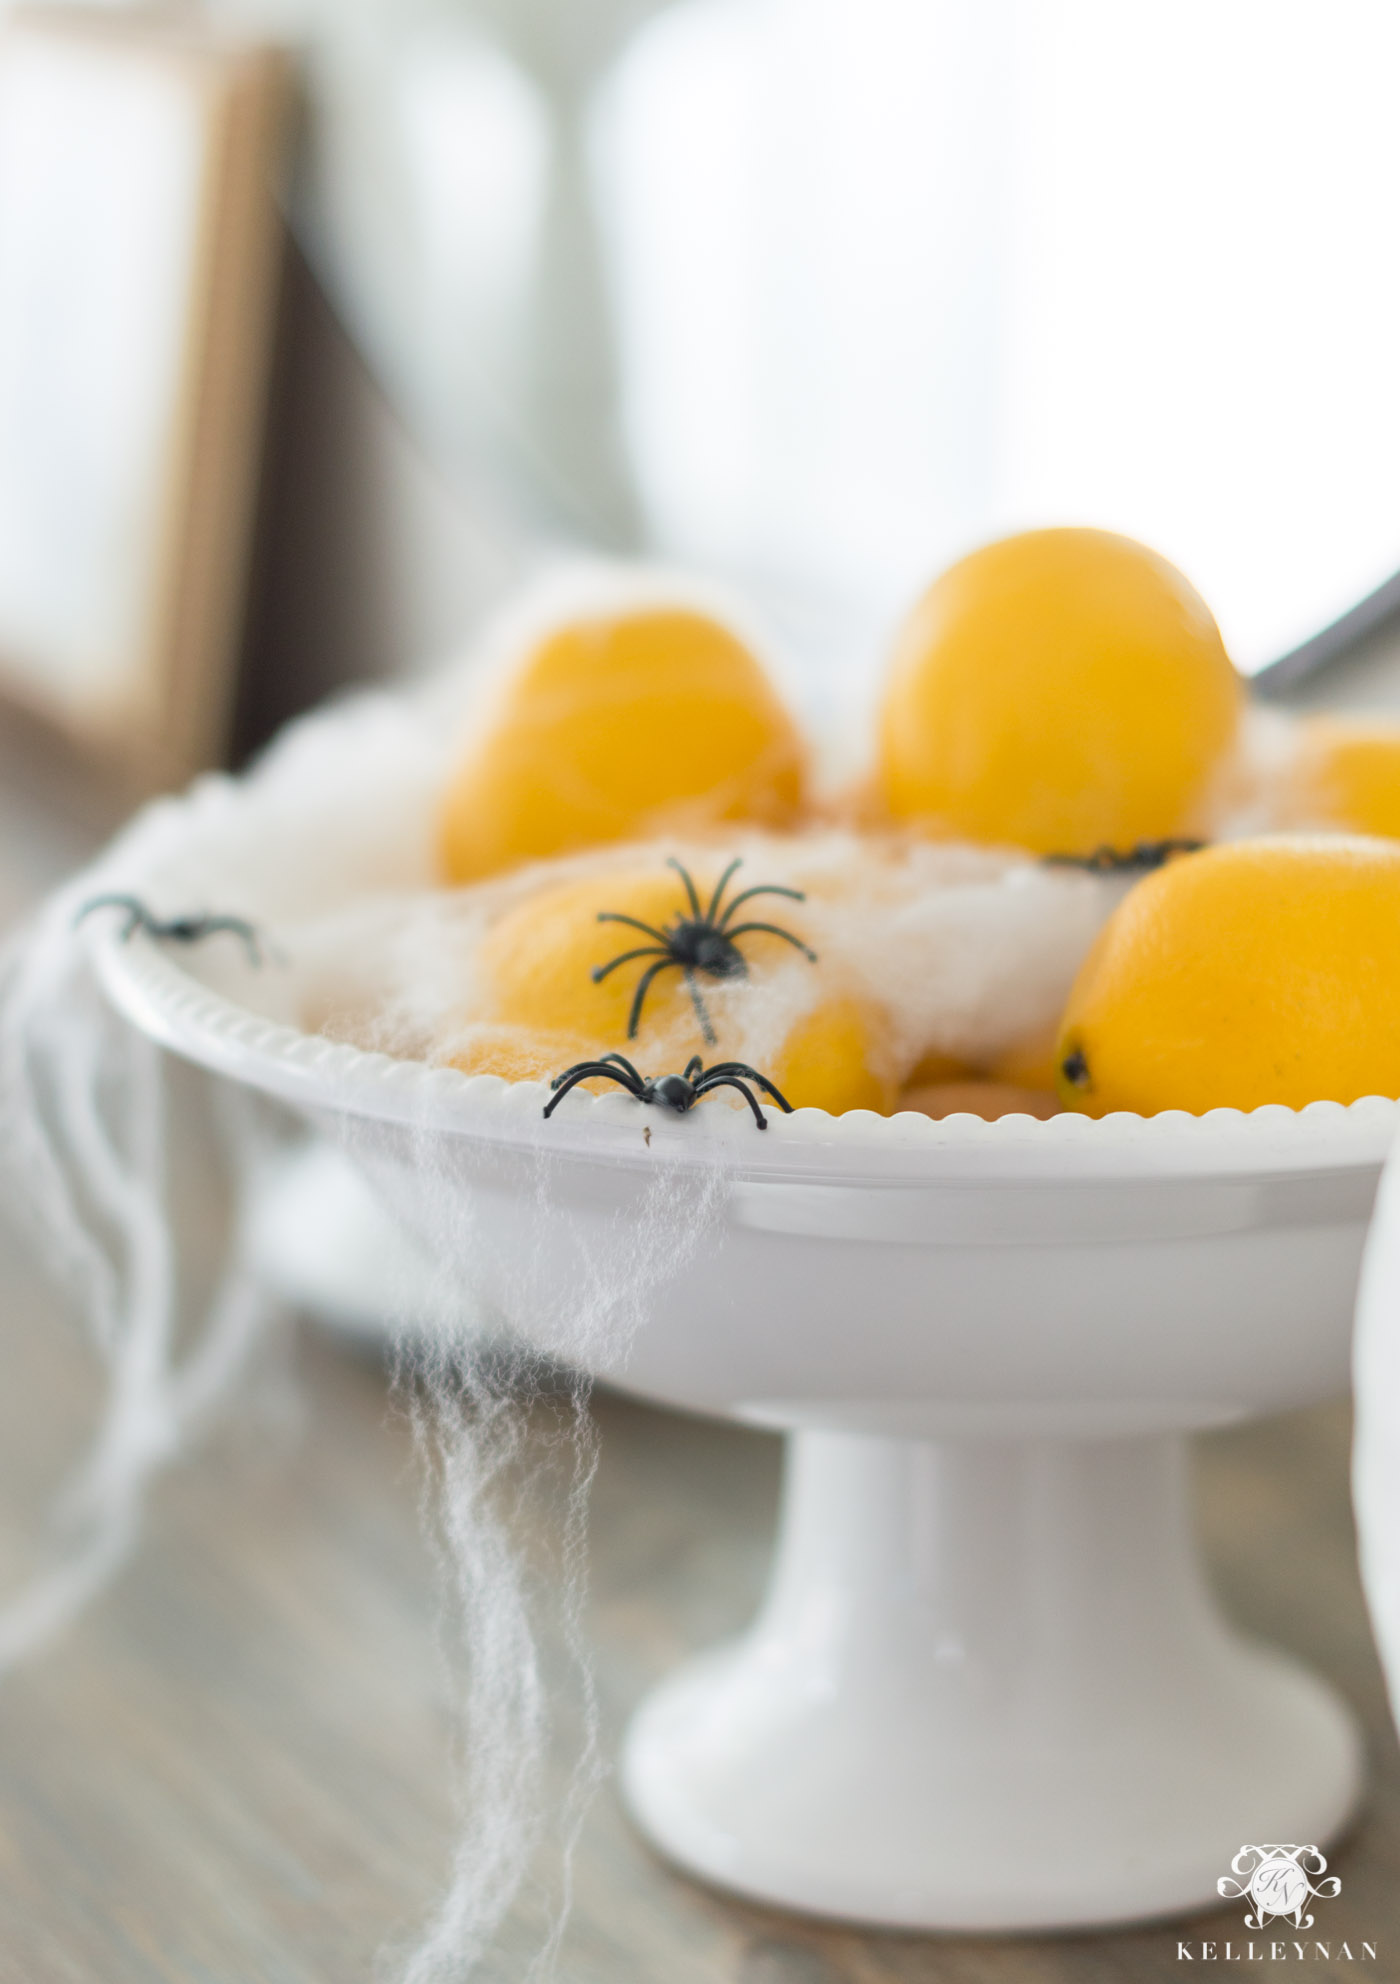 Easy Creepy Halloween Decor Ideas in the Kitchen